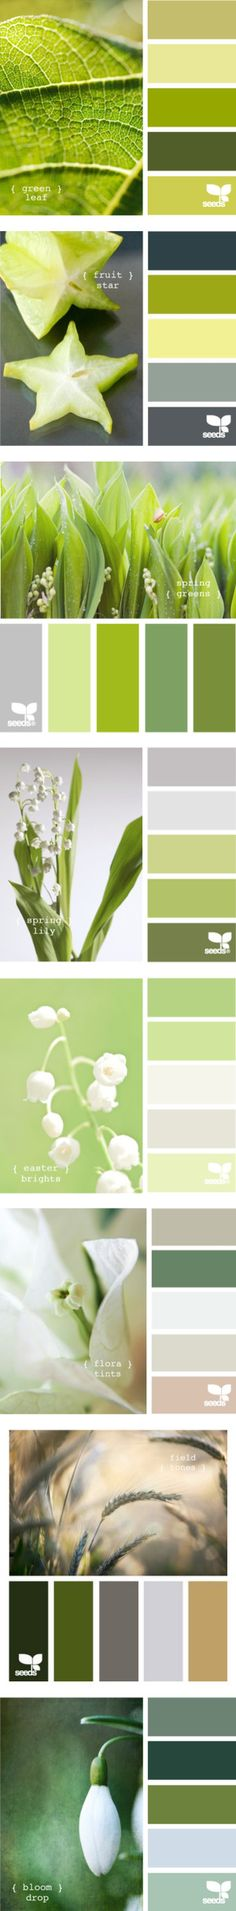 """""""Green color palet"""" by sedab ❤ liked on Polyvore"""